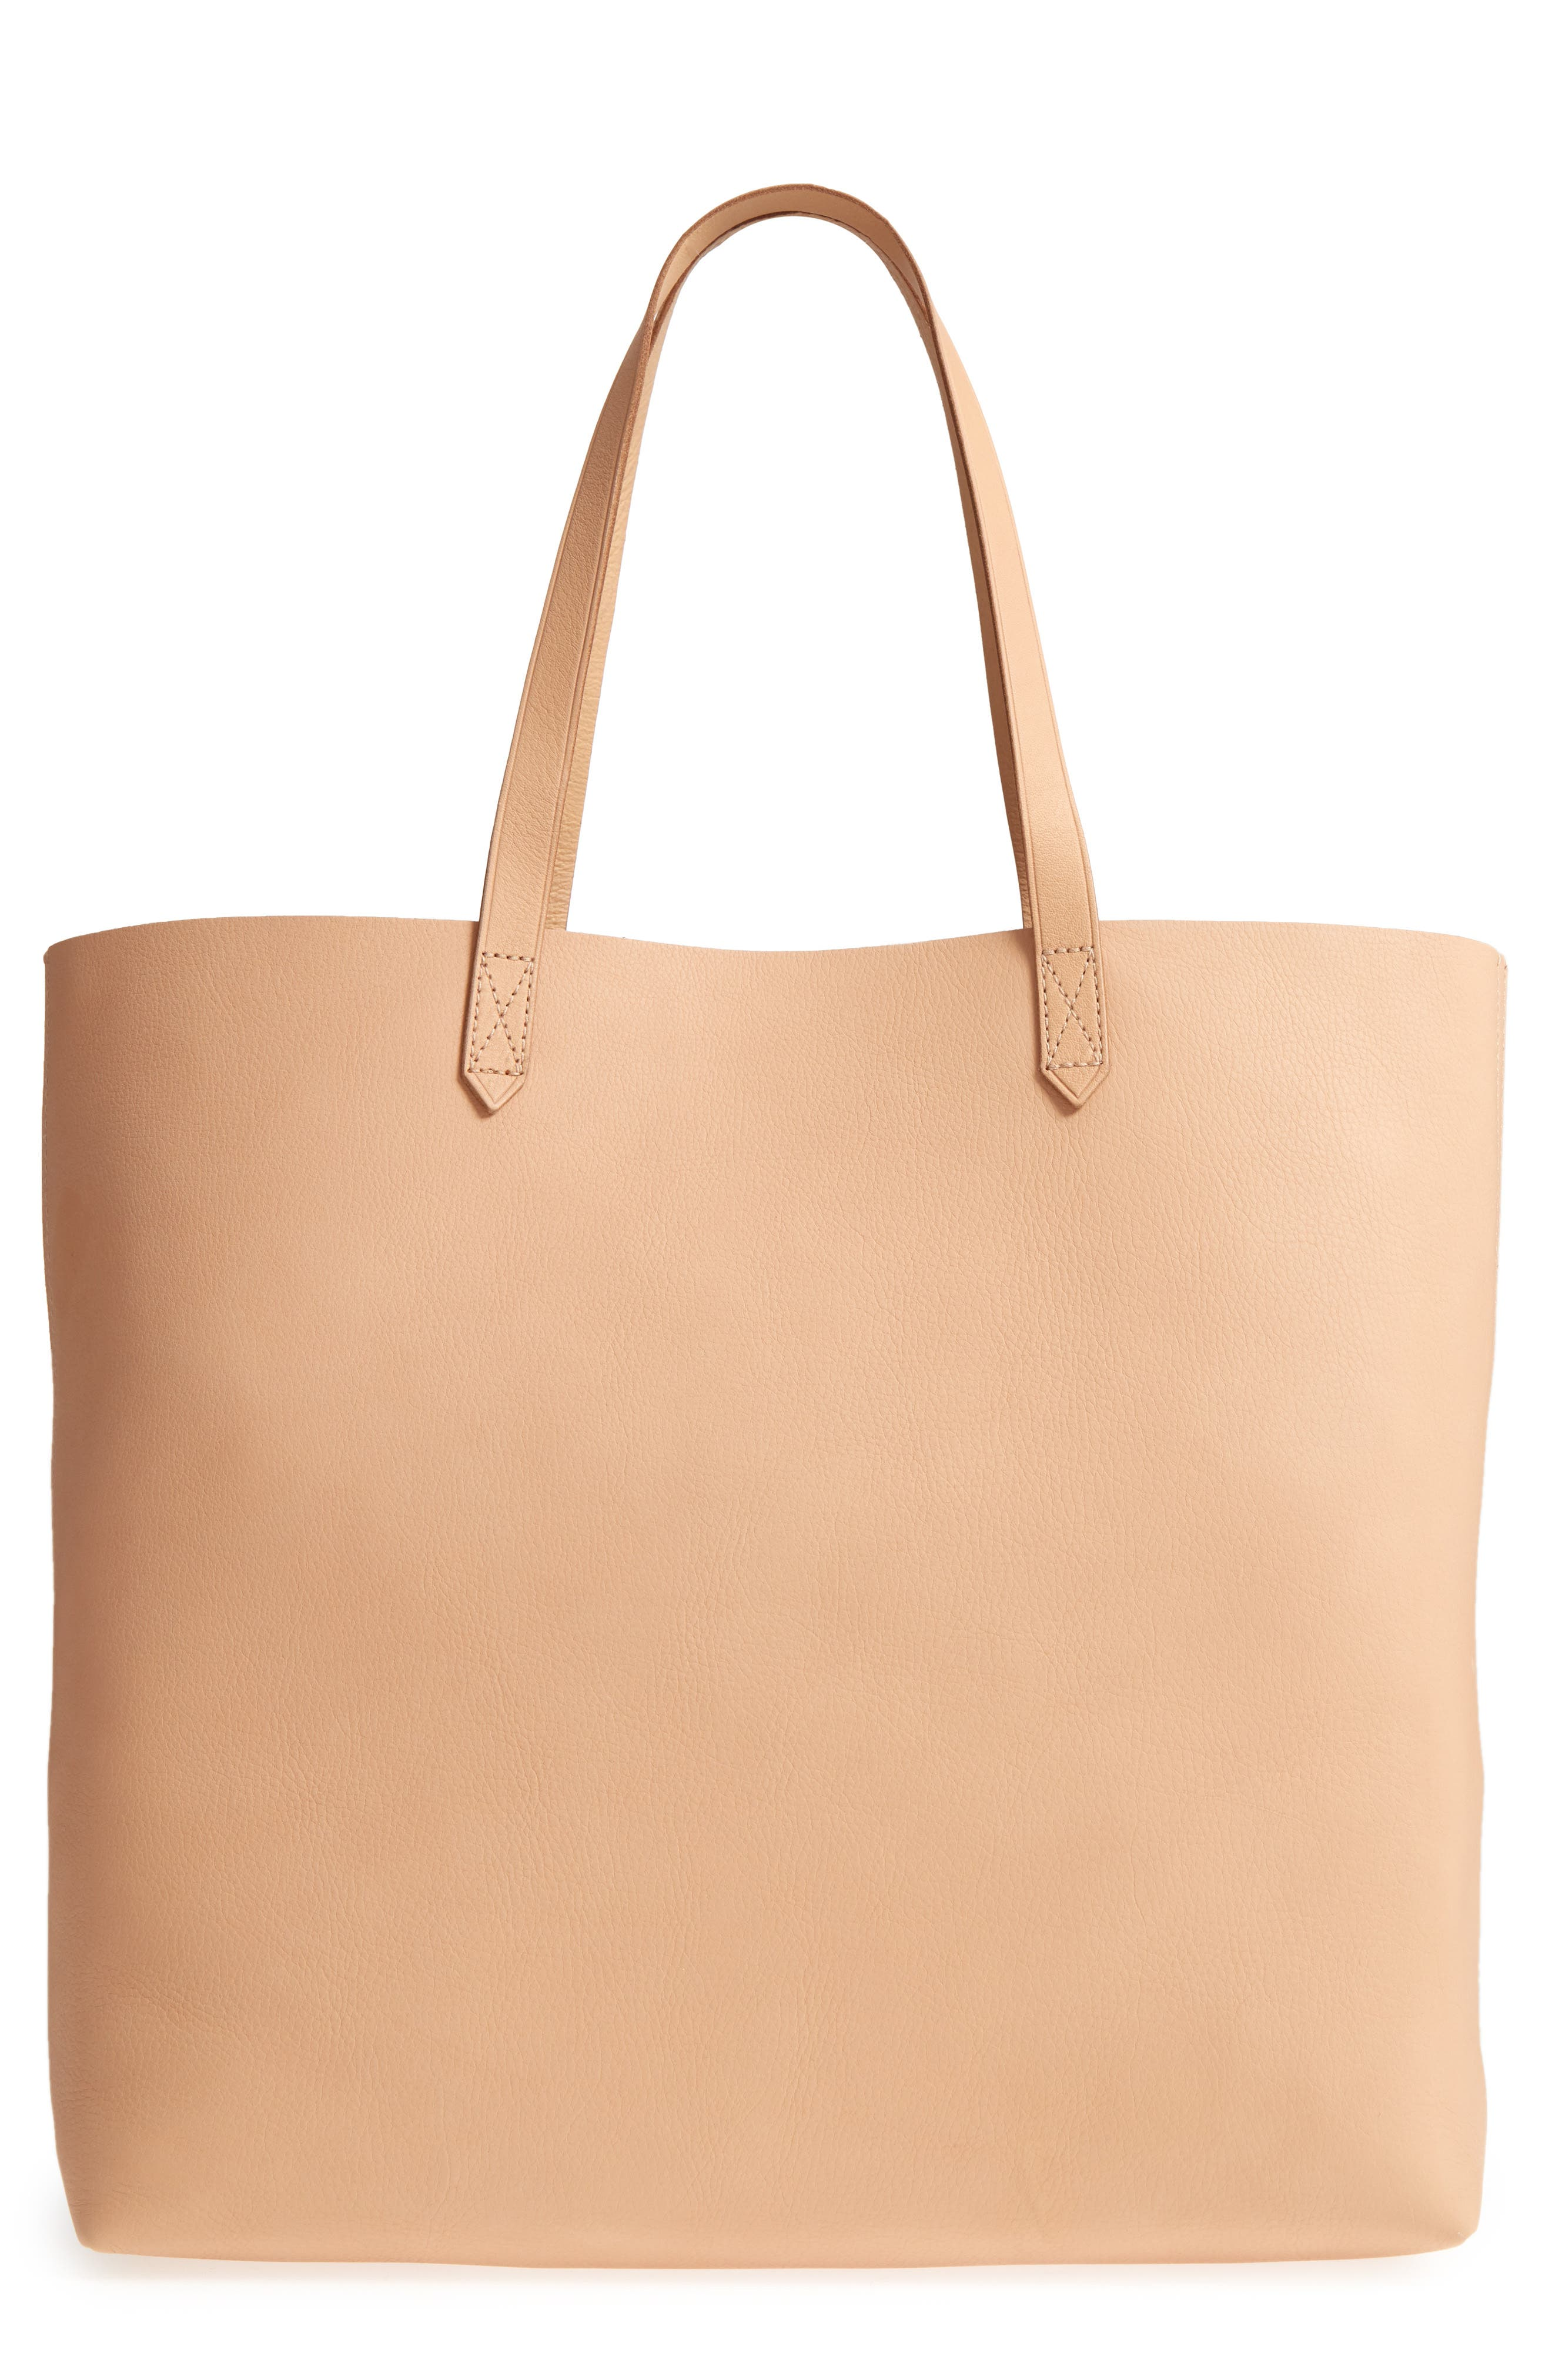 'Transport' Leather Tote,                             Main thumbnail 1, color,                             LINEN